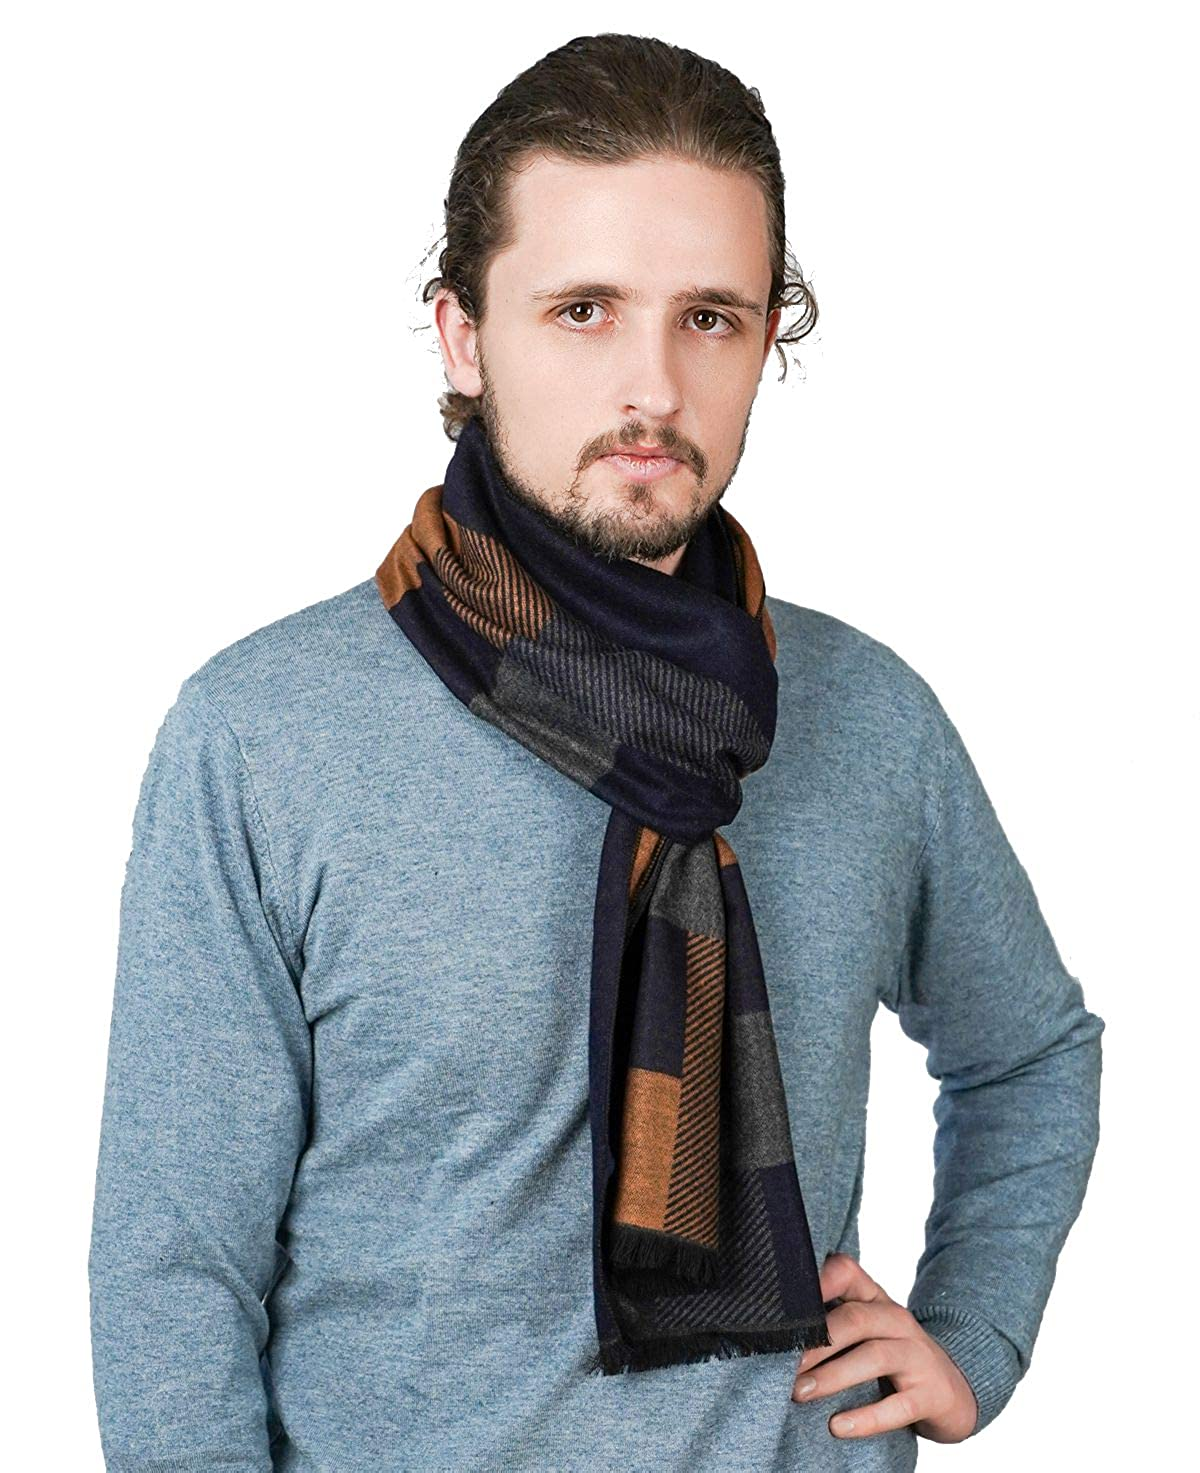 Cold Weather Scarves Fashion Lightweight and Soft Tacther.H Mens Scarf  Winter Cashmere Scarves Clothing, Shoes & Jewelry samel.com.br